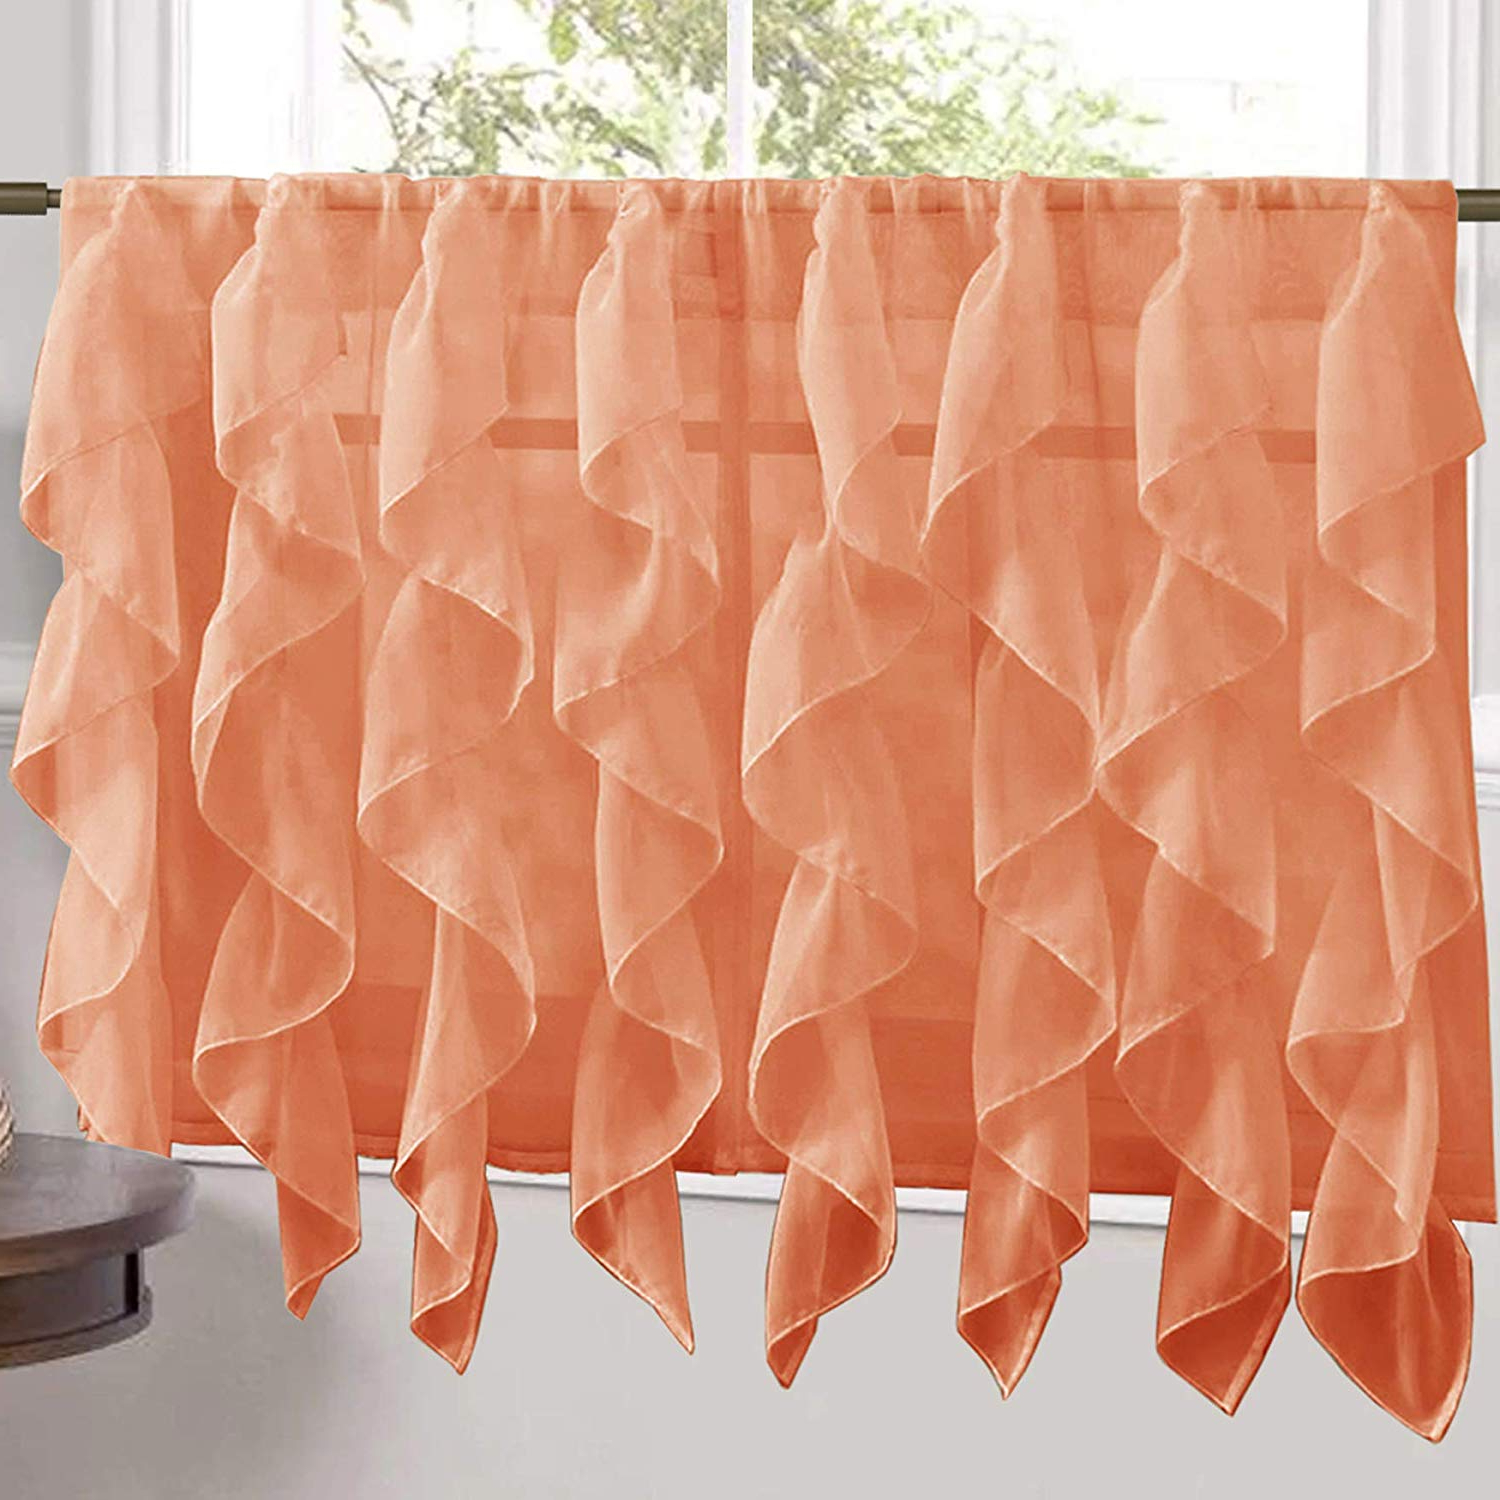 "Most Current Vertical Ruffled Waterfall Valances And Curtain Tiers Pertaining To Sweet Home Collection Veritcal Kitchen Curtain Sheer Cascading Ruffle  Waterfall Window Treatment – Choice Of Valance, 24"" Or 36"" Teir, And Kit,  Tier (Gallery 17 of 20)"